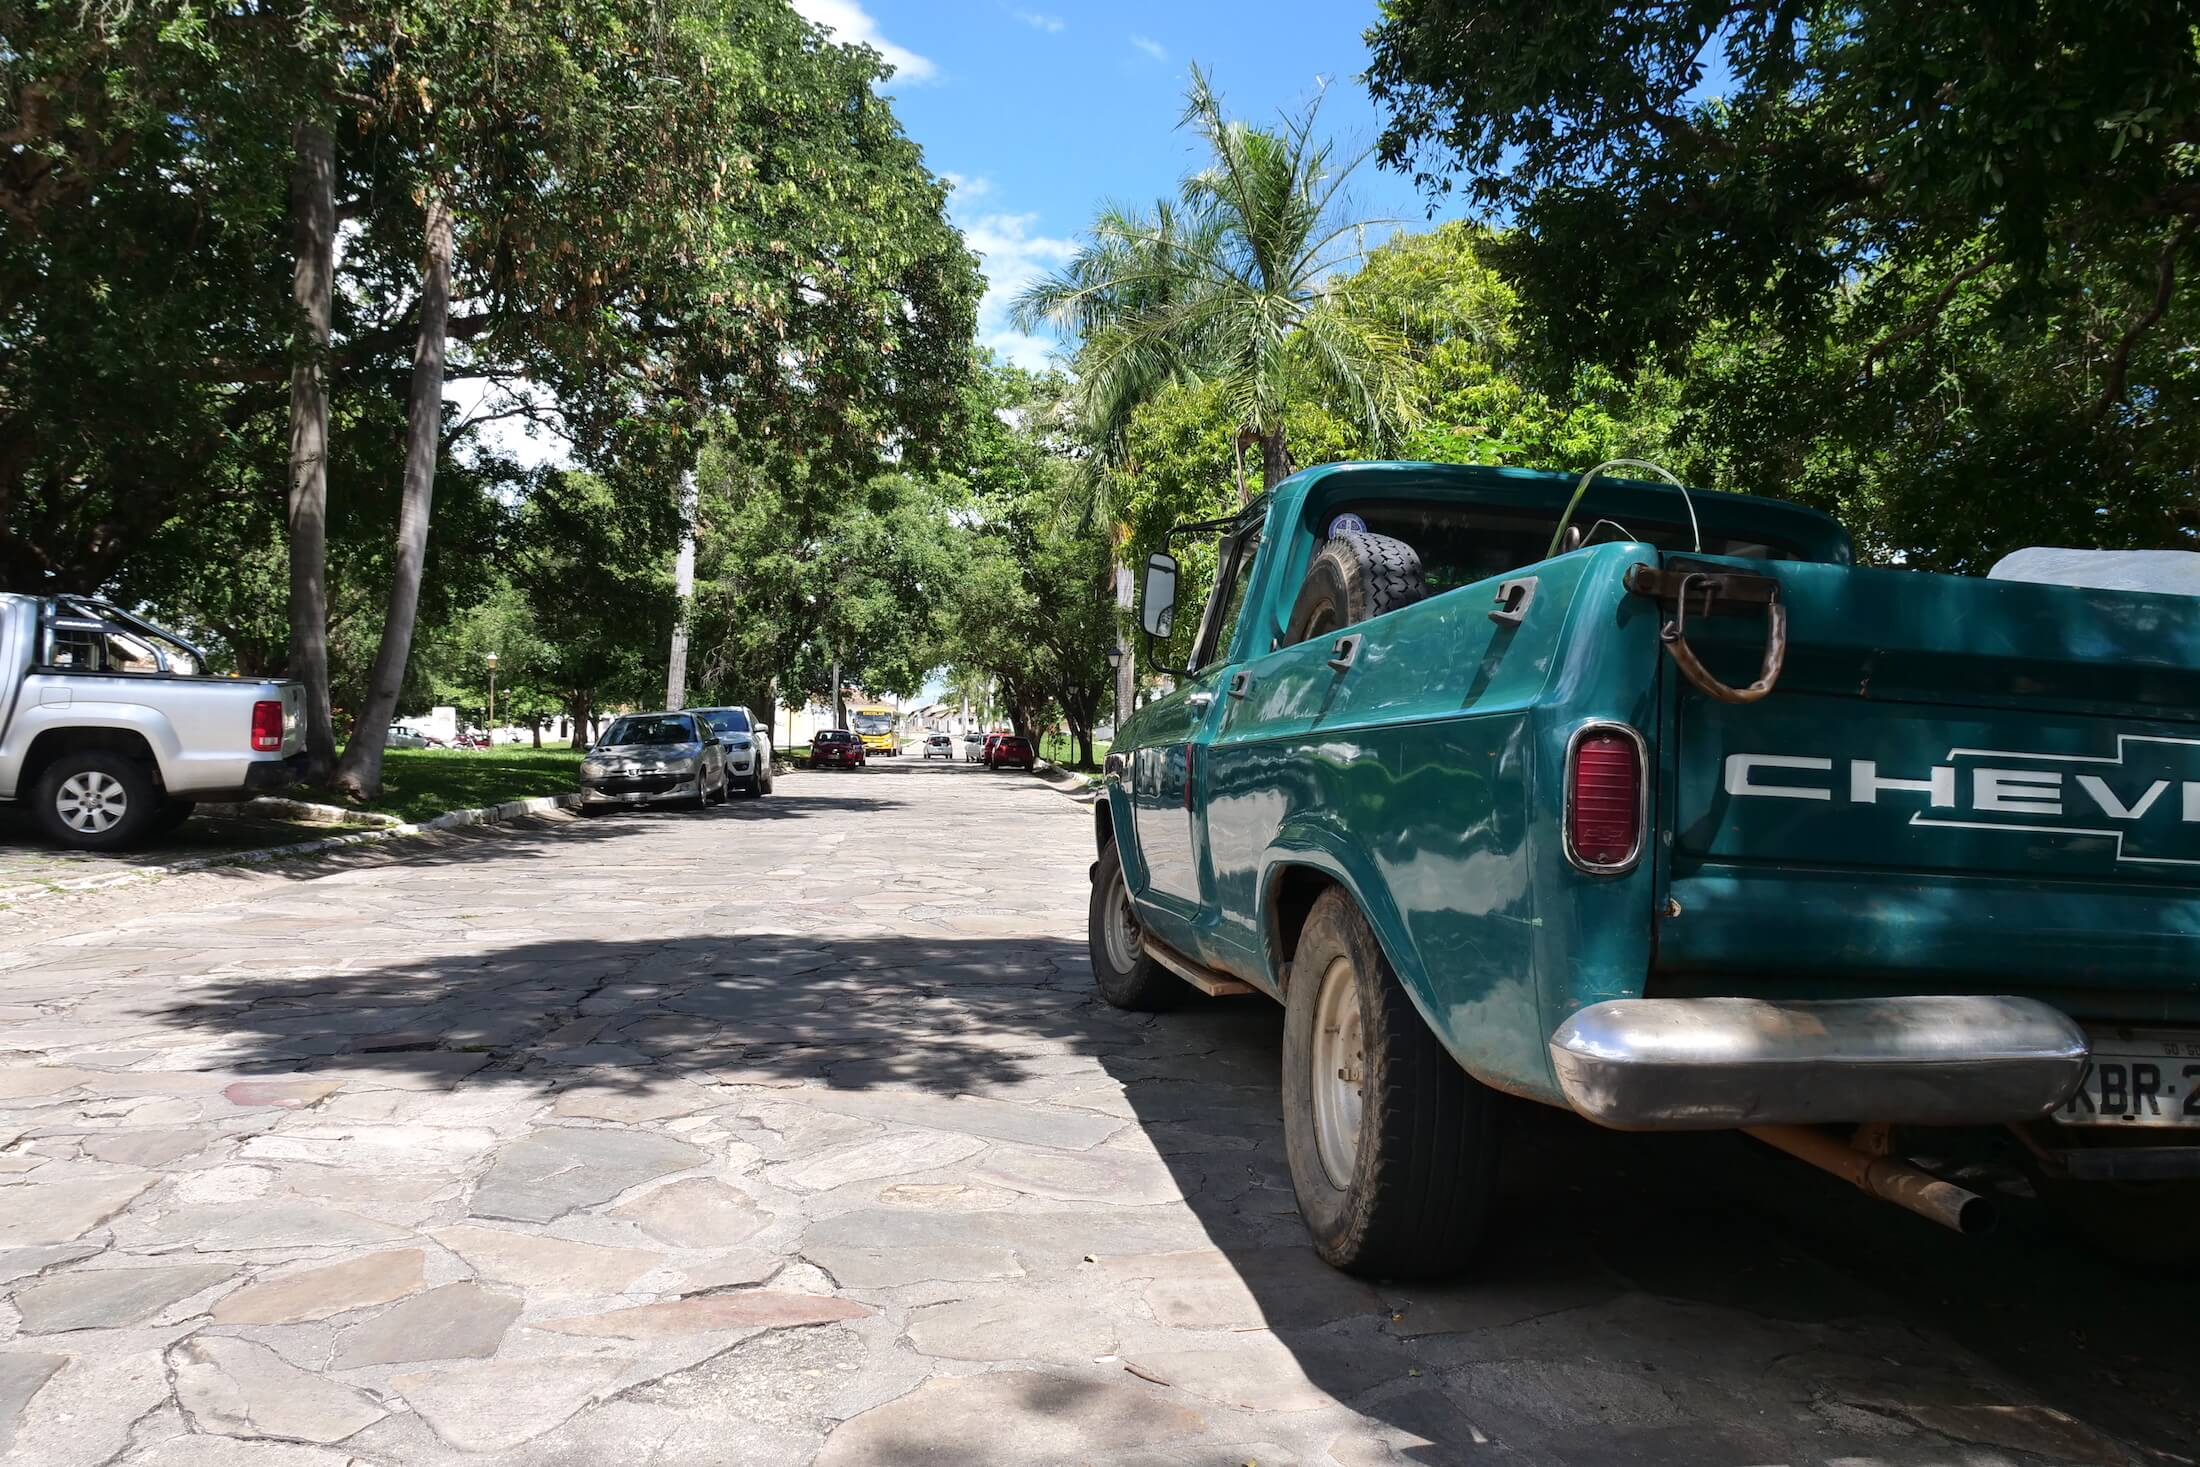 Beautiful cobblestone streets, take some time to enjoy the old city as well, after your meal of Pequi of course